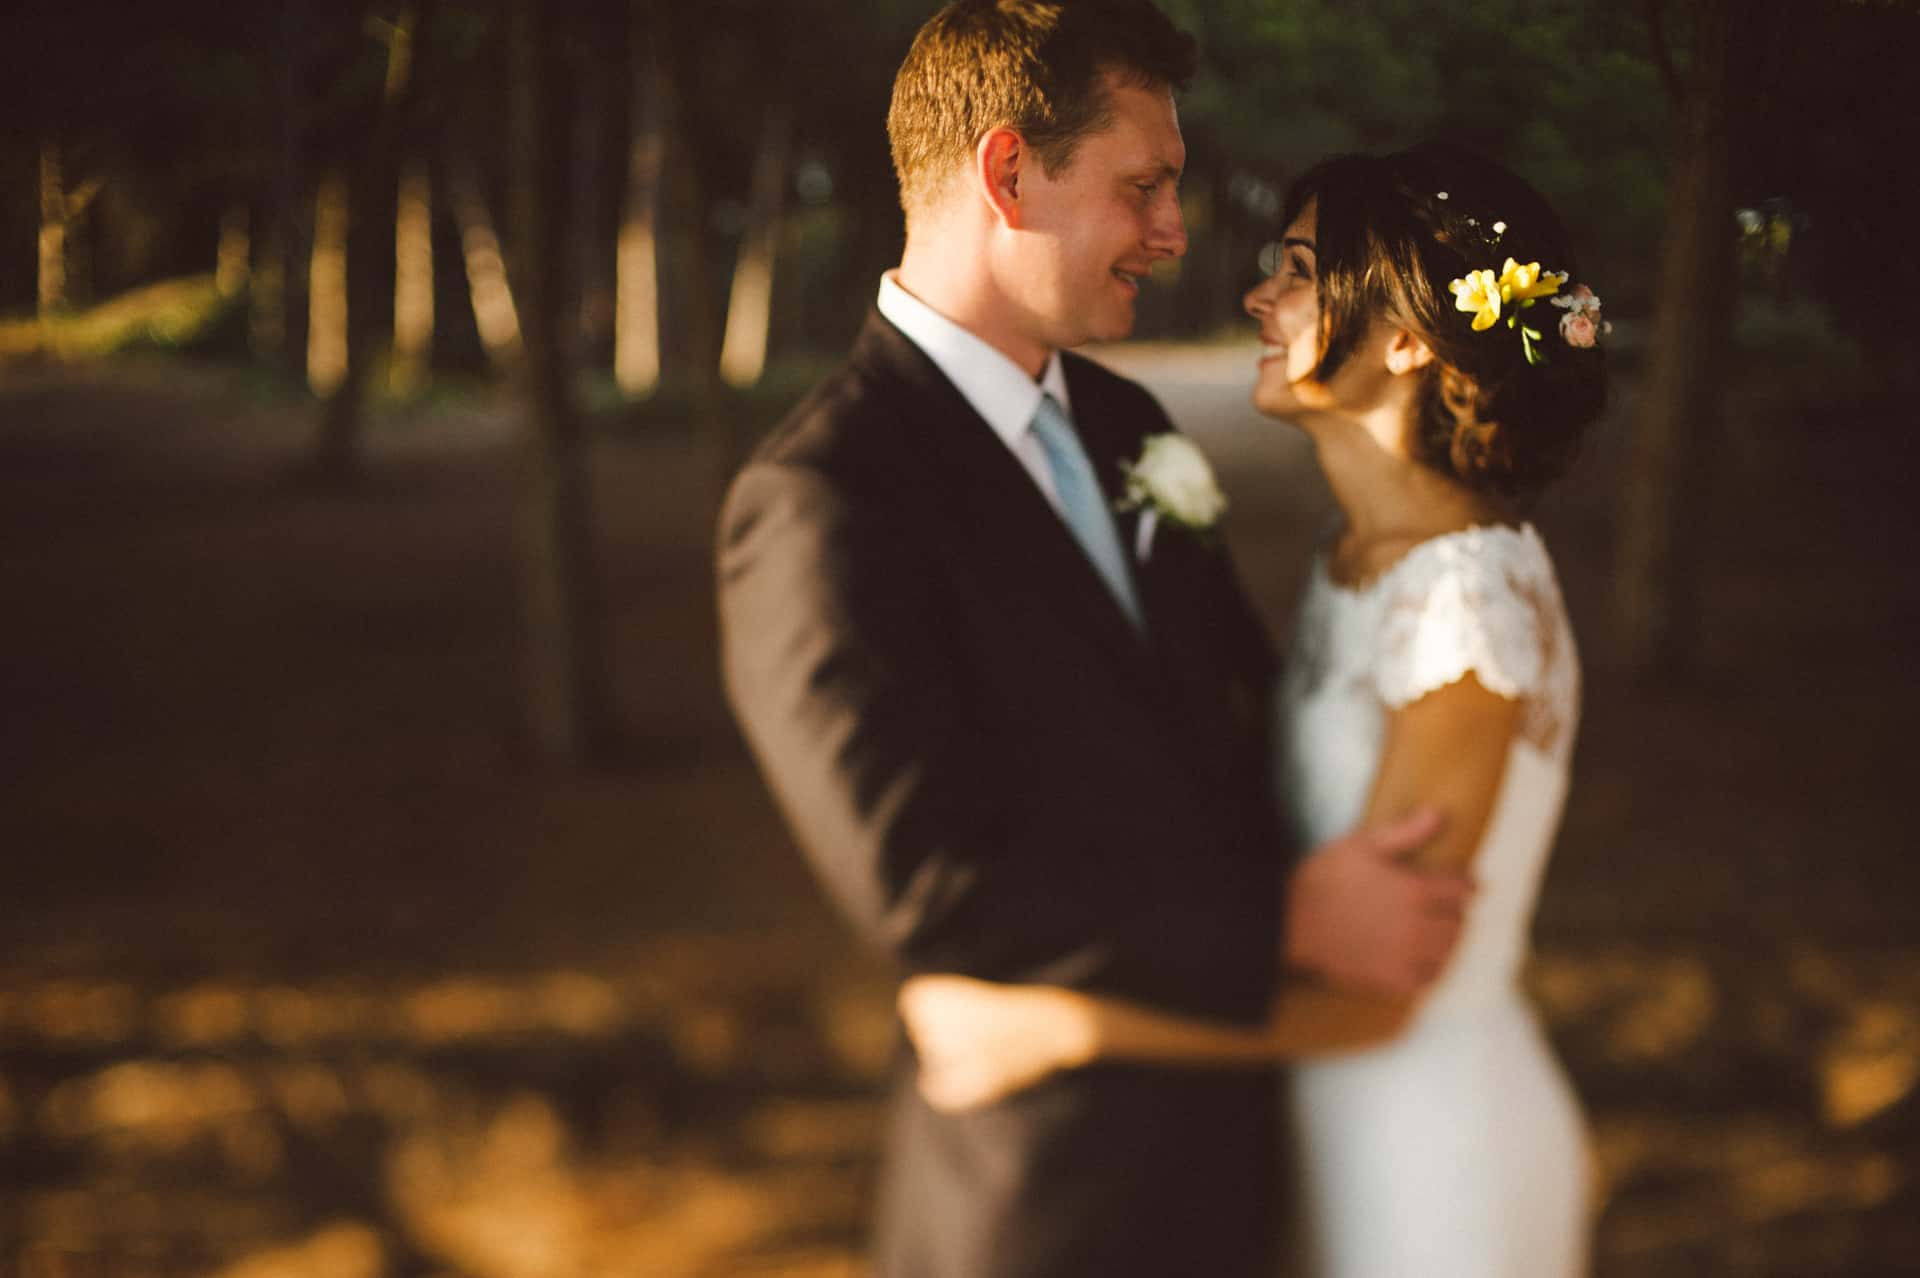 Best wedding images of the year (199 of 316)